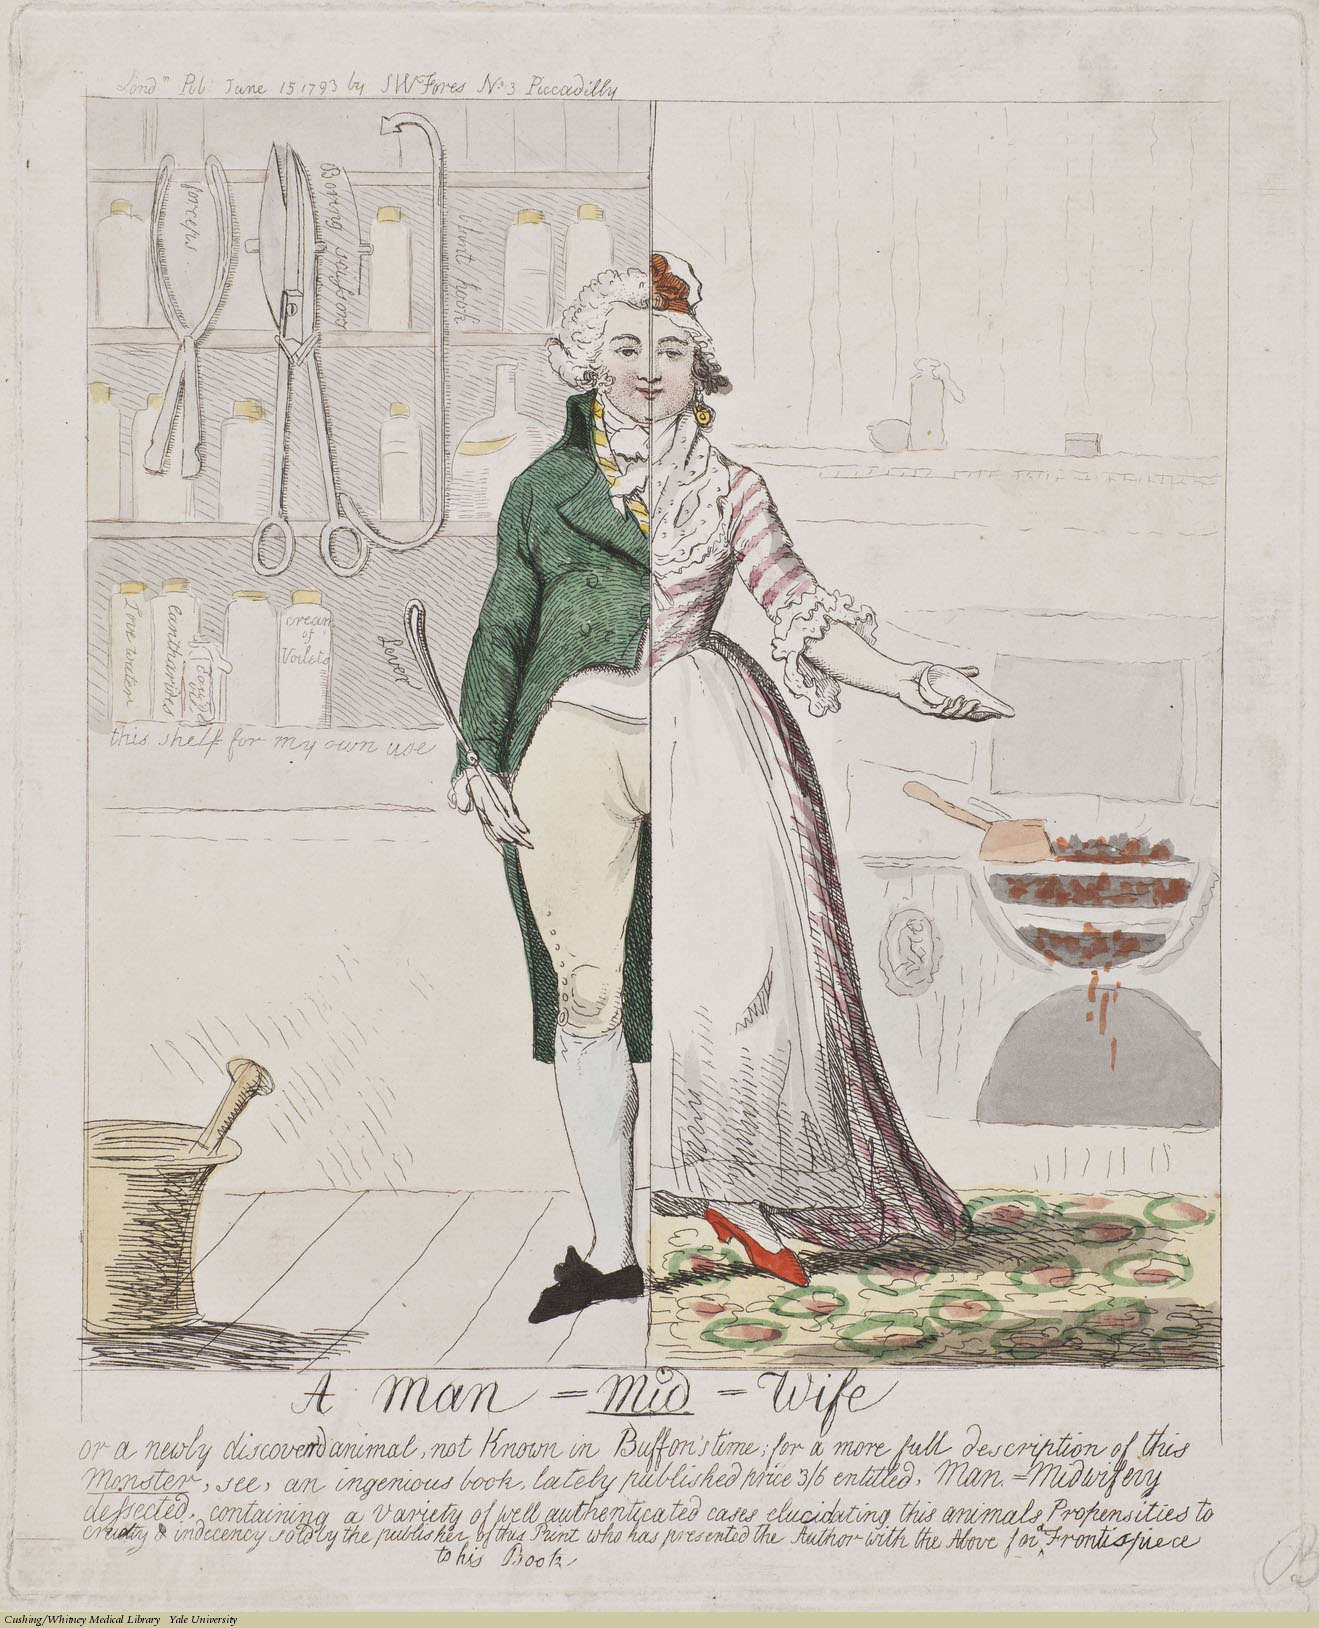 A Man Mid-Wife, Isaac Cruikshank, Etching coloured, 1793. Subject: John Blunt (pseud. S.W. Fores), Midwives, Surgical Instruments, Forceps.